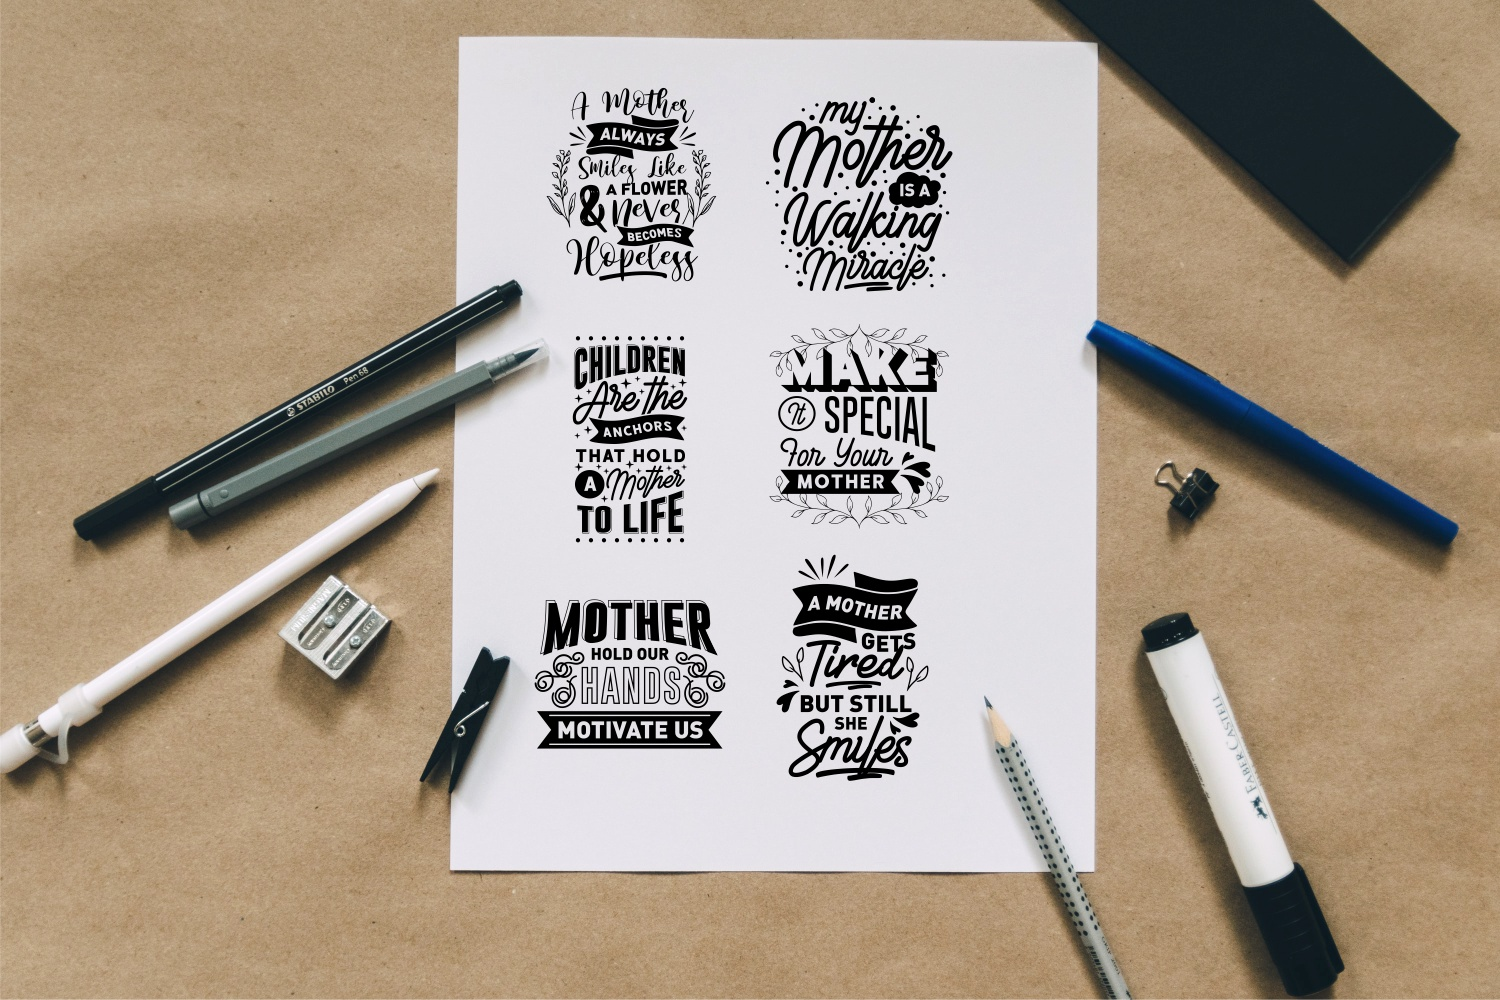 Mom Quotes SVG Bundle, Craft Designs Collection Cut File - 1 178 -